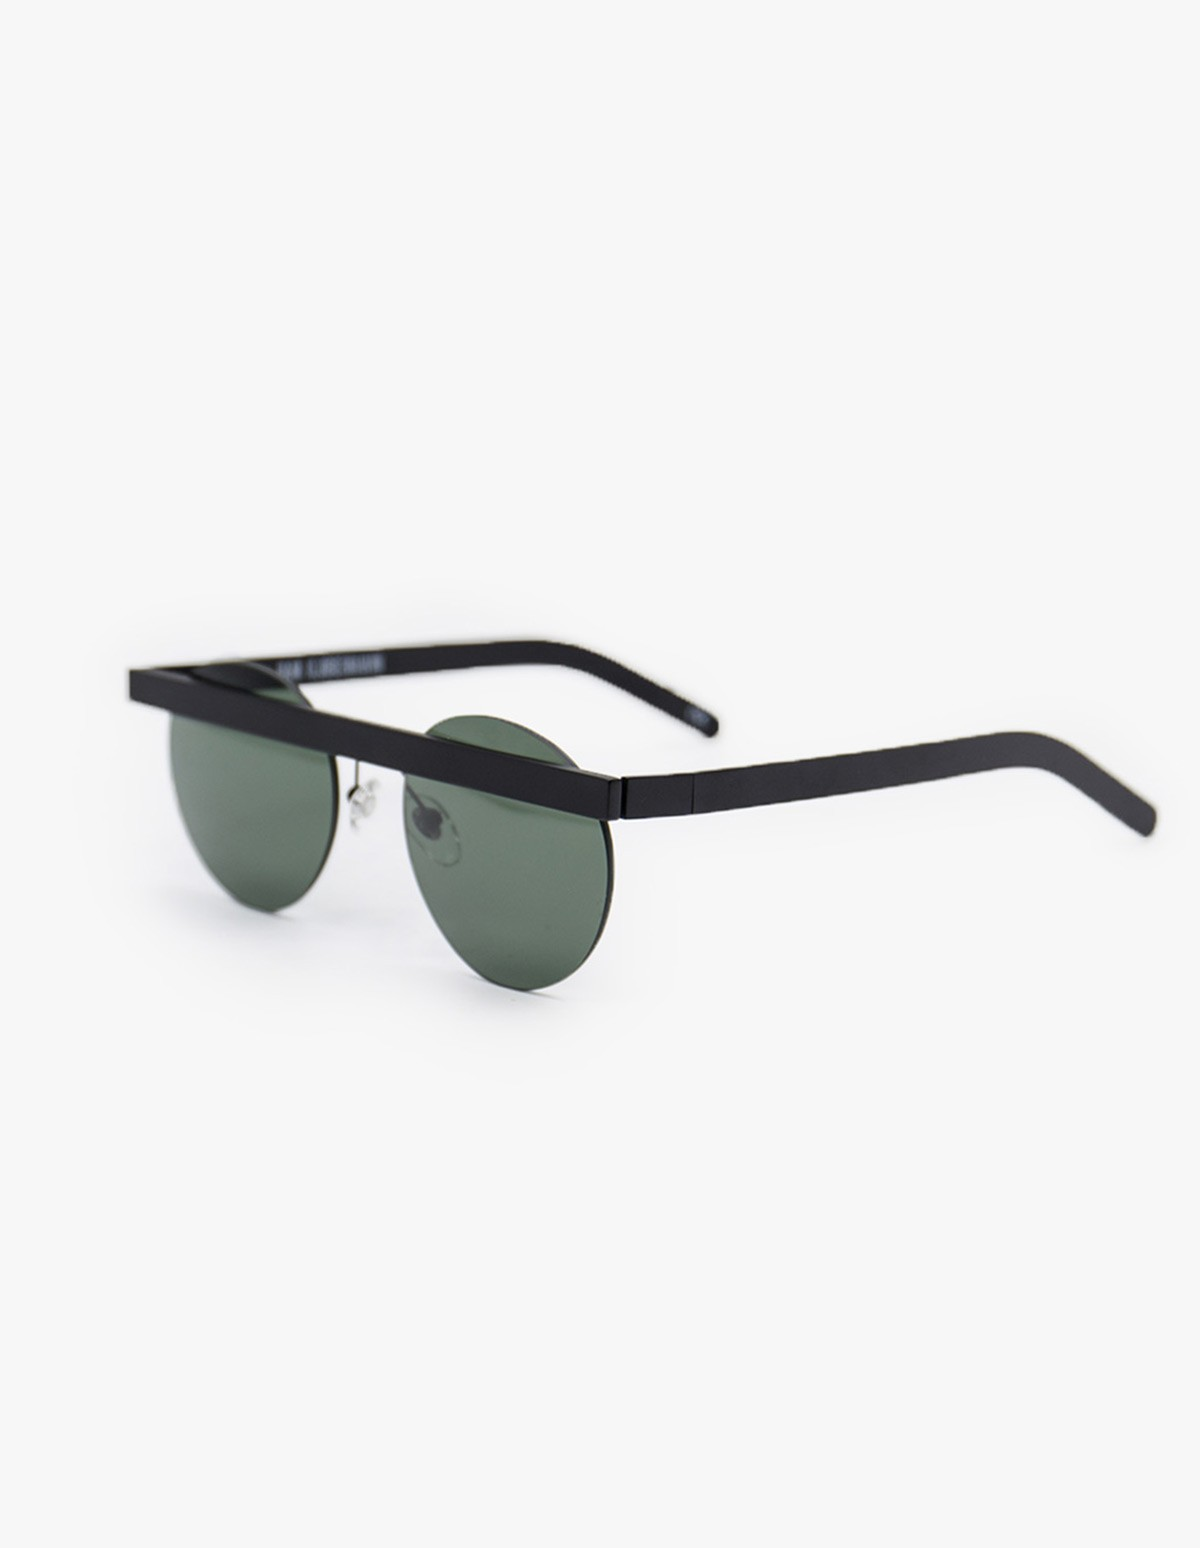 Han Kjøbenhavn Stable Sunglasses in Matt Black Sun Green